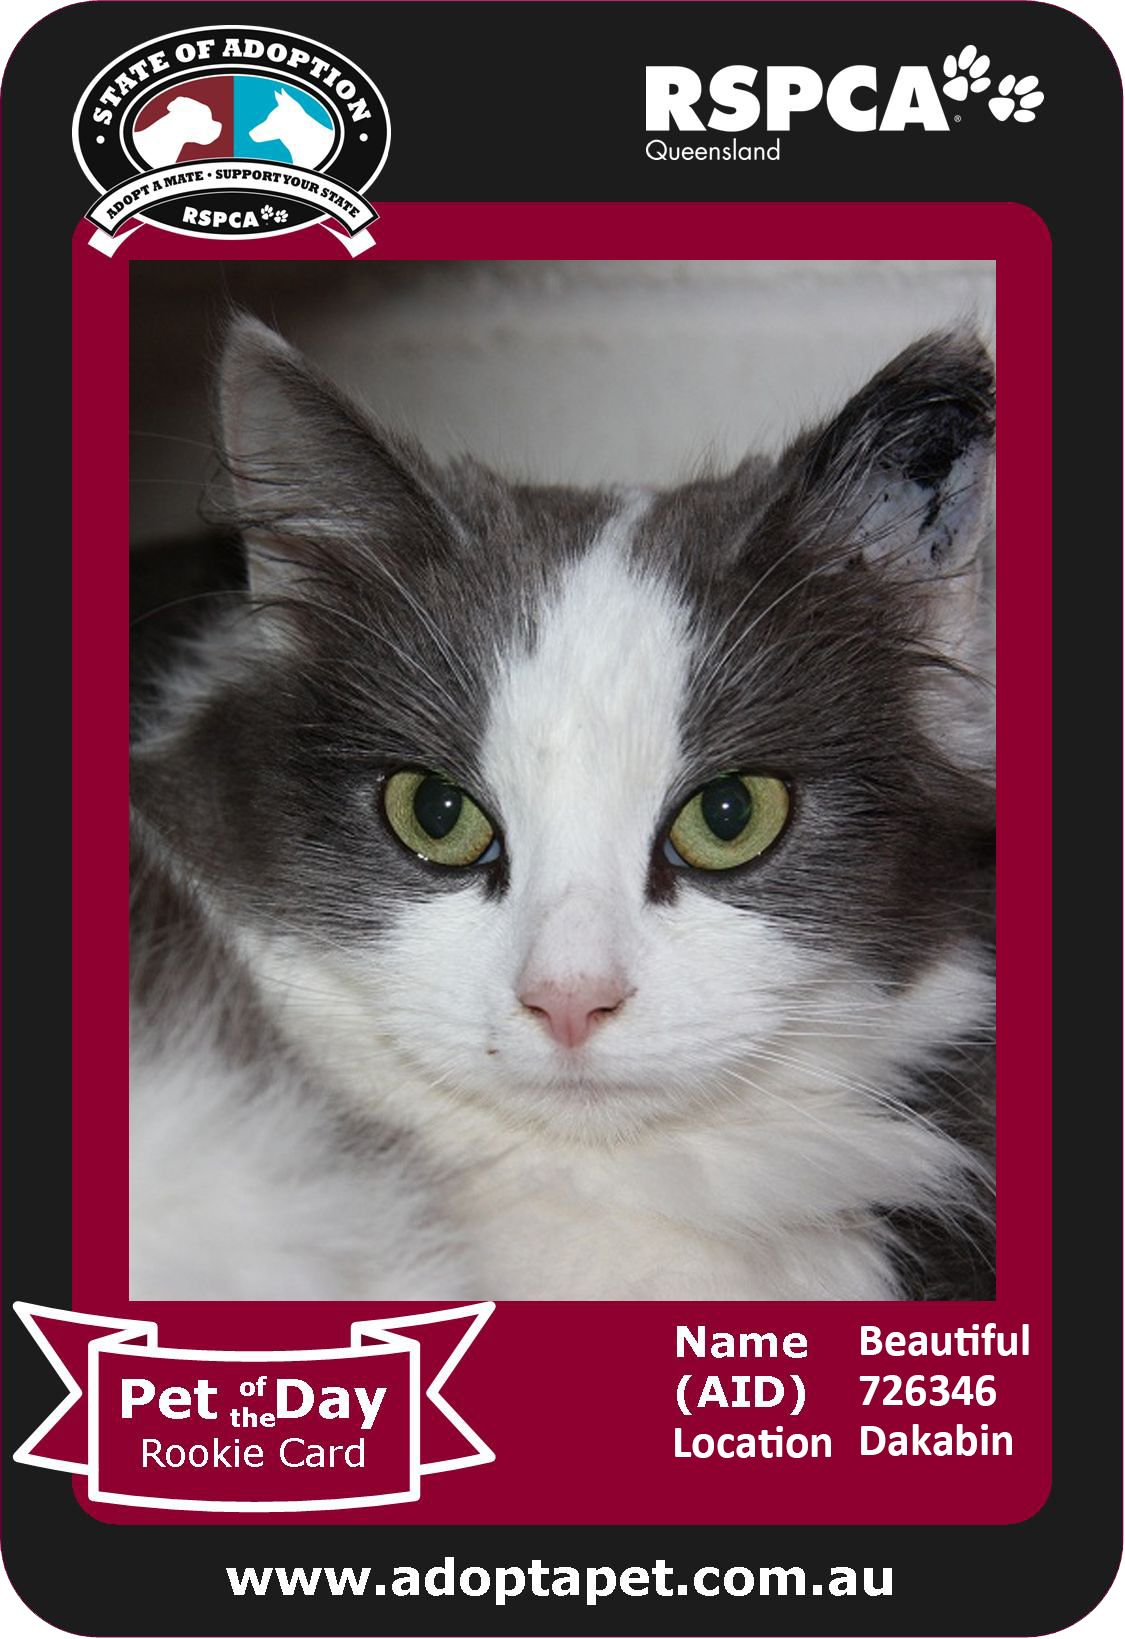 "My name is ""Beautiful"". I am a lovely, longer haired girl seeking a loving family. I'm no trouble at all. In fact I am a delight to have as a friend. I am kitty litter box trained and don't mind the company of children. I do however have a pale face with pink skin, so I would be best suited to being an indoor only cat. I'm just $99 to adopt so come see me at the Dakabin RSPCA Centre #adoptapet #rspcaqld #cat #SOA2013 #adopt #rescuepet #buyacat"